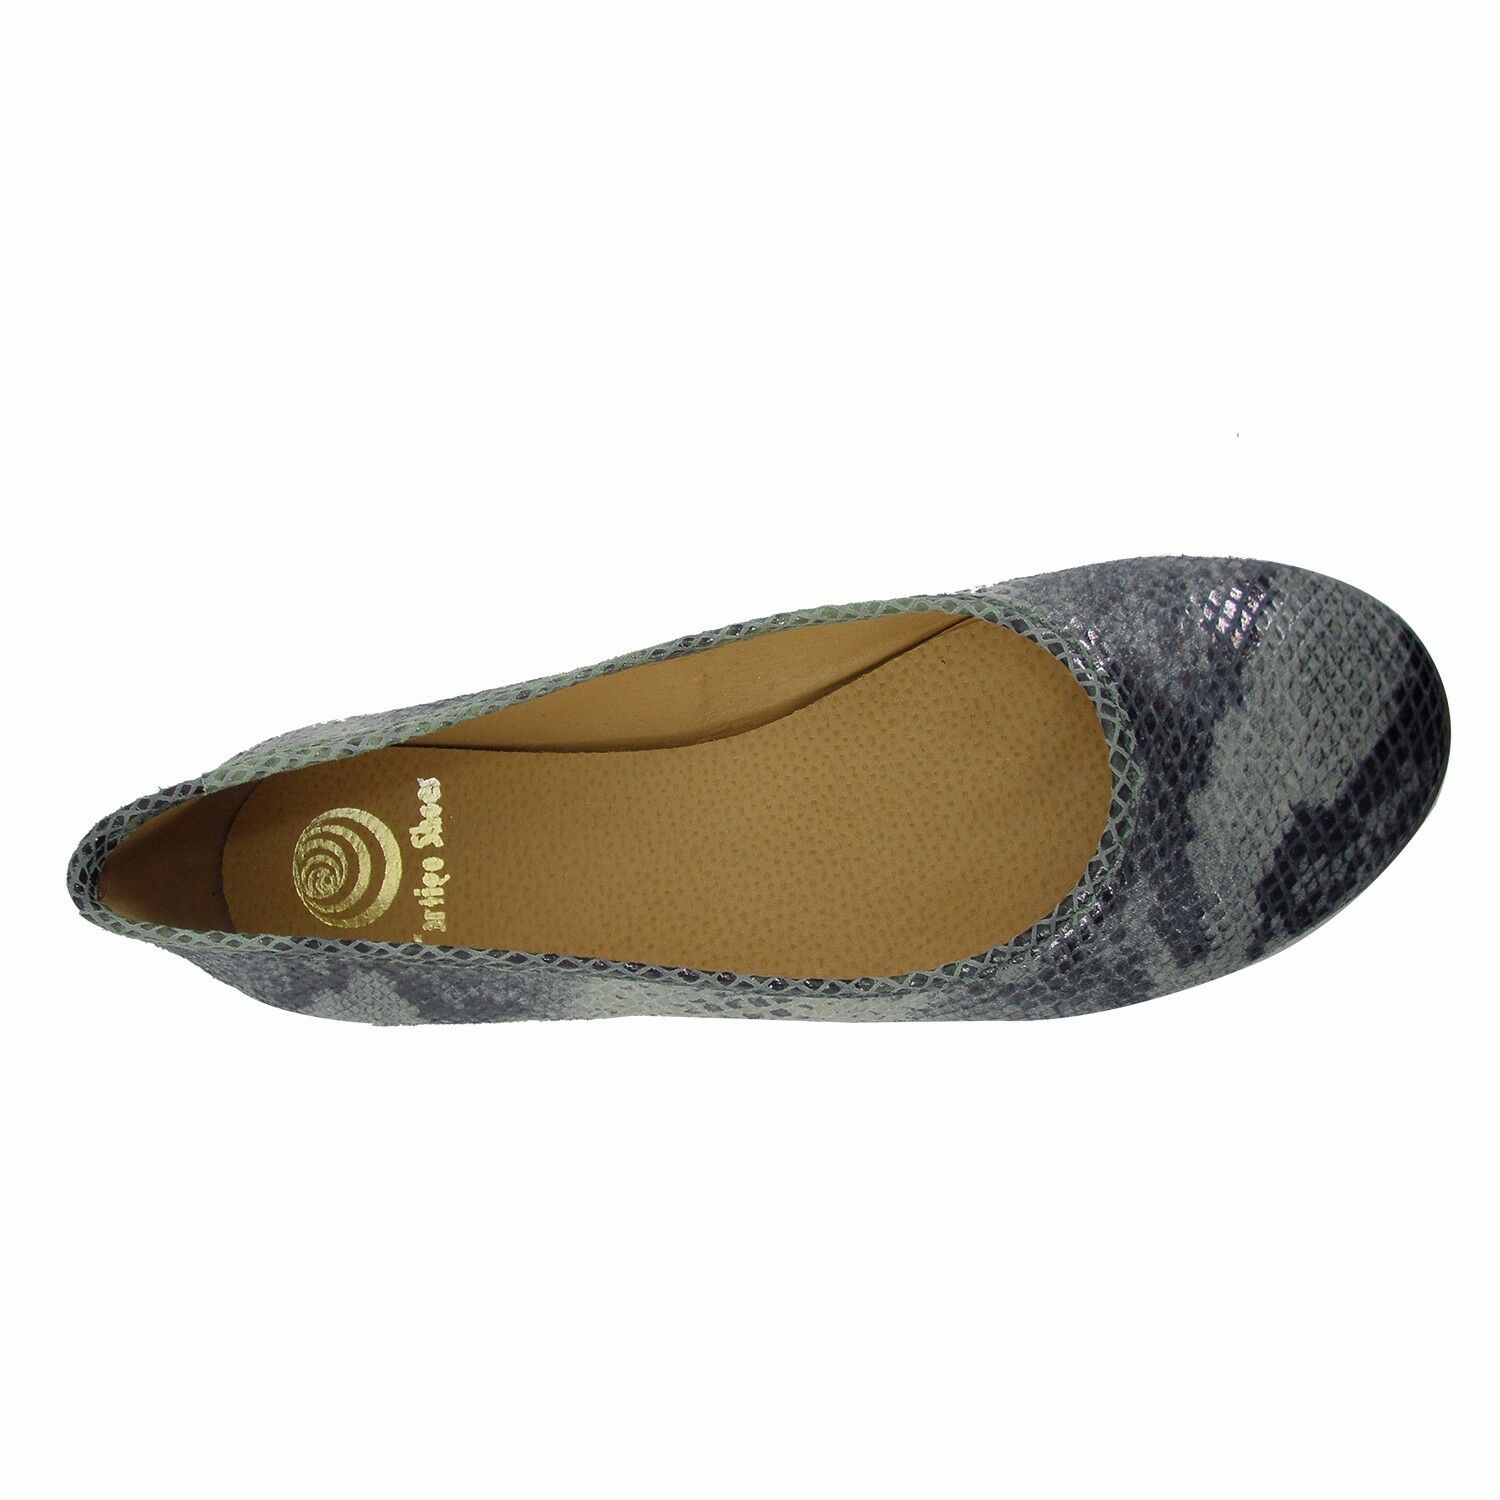 Size 12 (/ ) Mint Snake Print Leather Ballet Flats MADE IN SPAIN